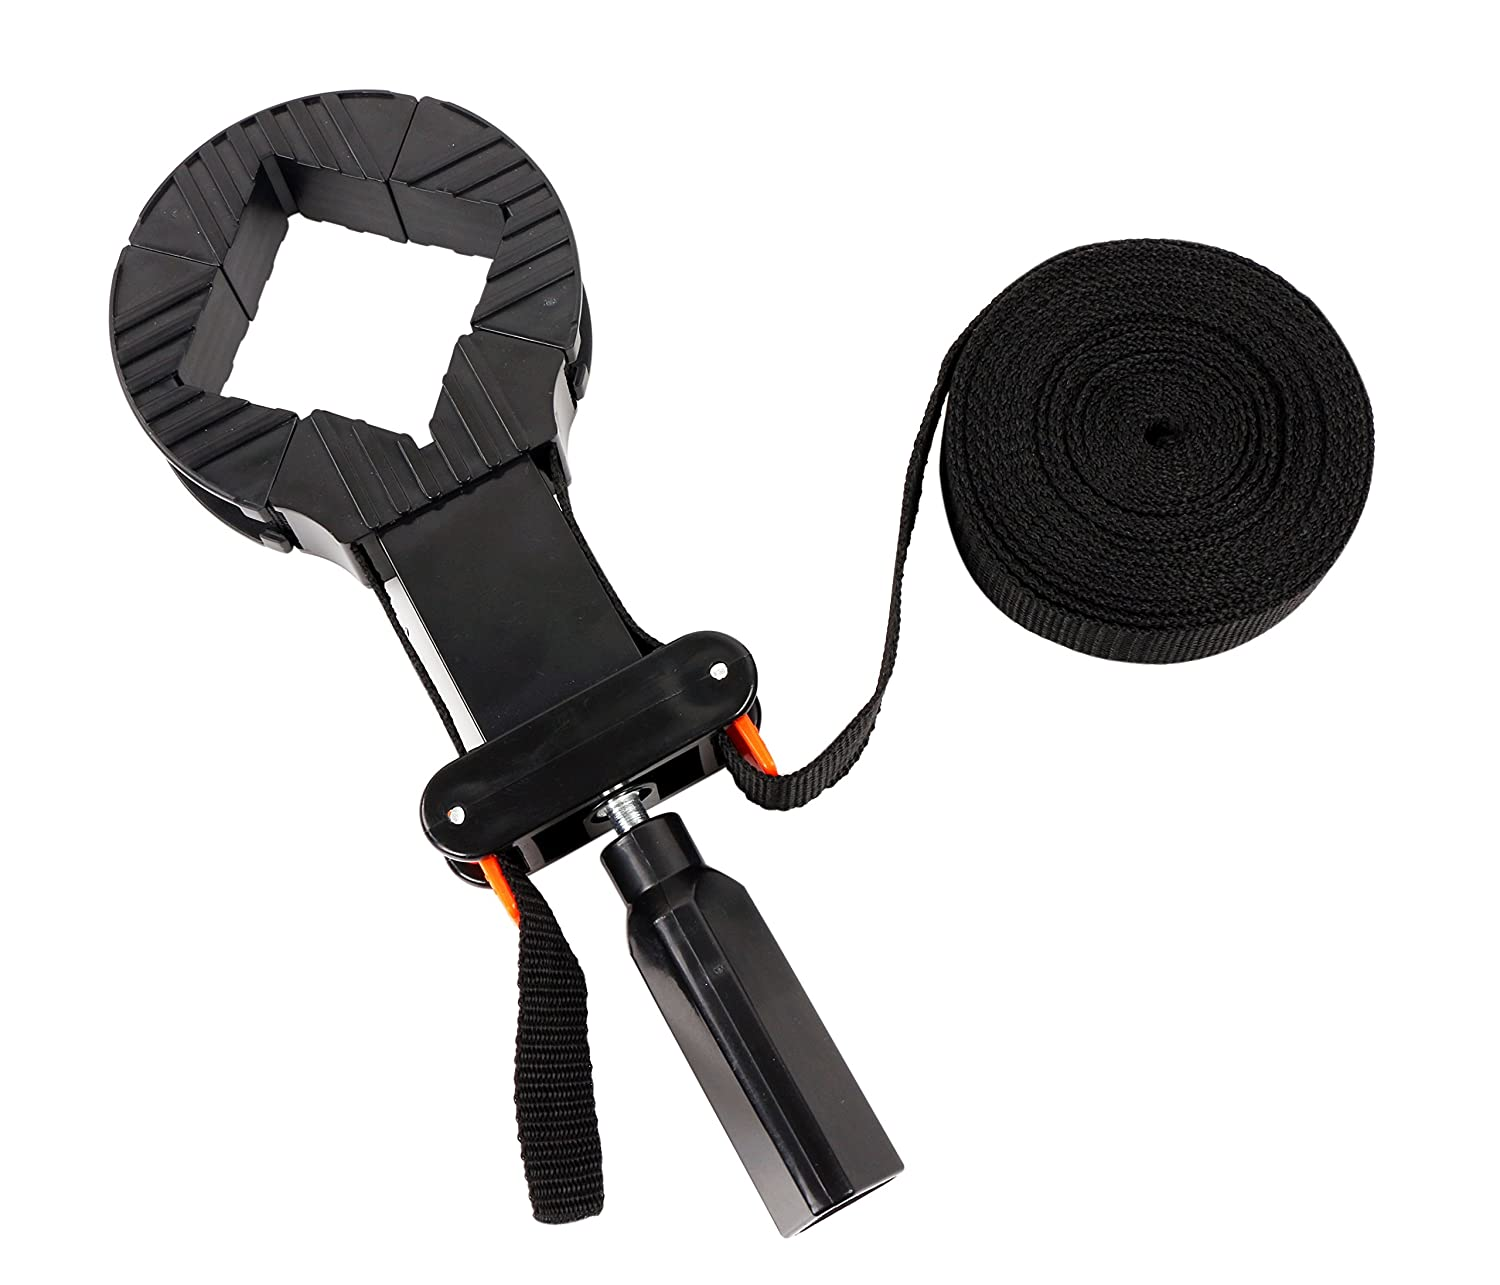 20 Feet Long Multifunctional Adjustable Binding Woodworking Tool Belt Band Strap Clamp With 90 Degree Angle Clip Adjustable Perfect for Use With Box, Picture Frame, Barrel ¡ Barrel ¡ Excel Life BH10001A